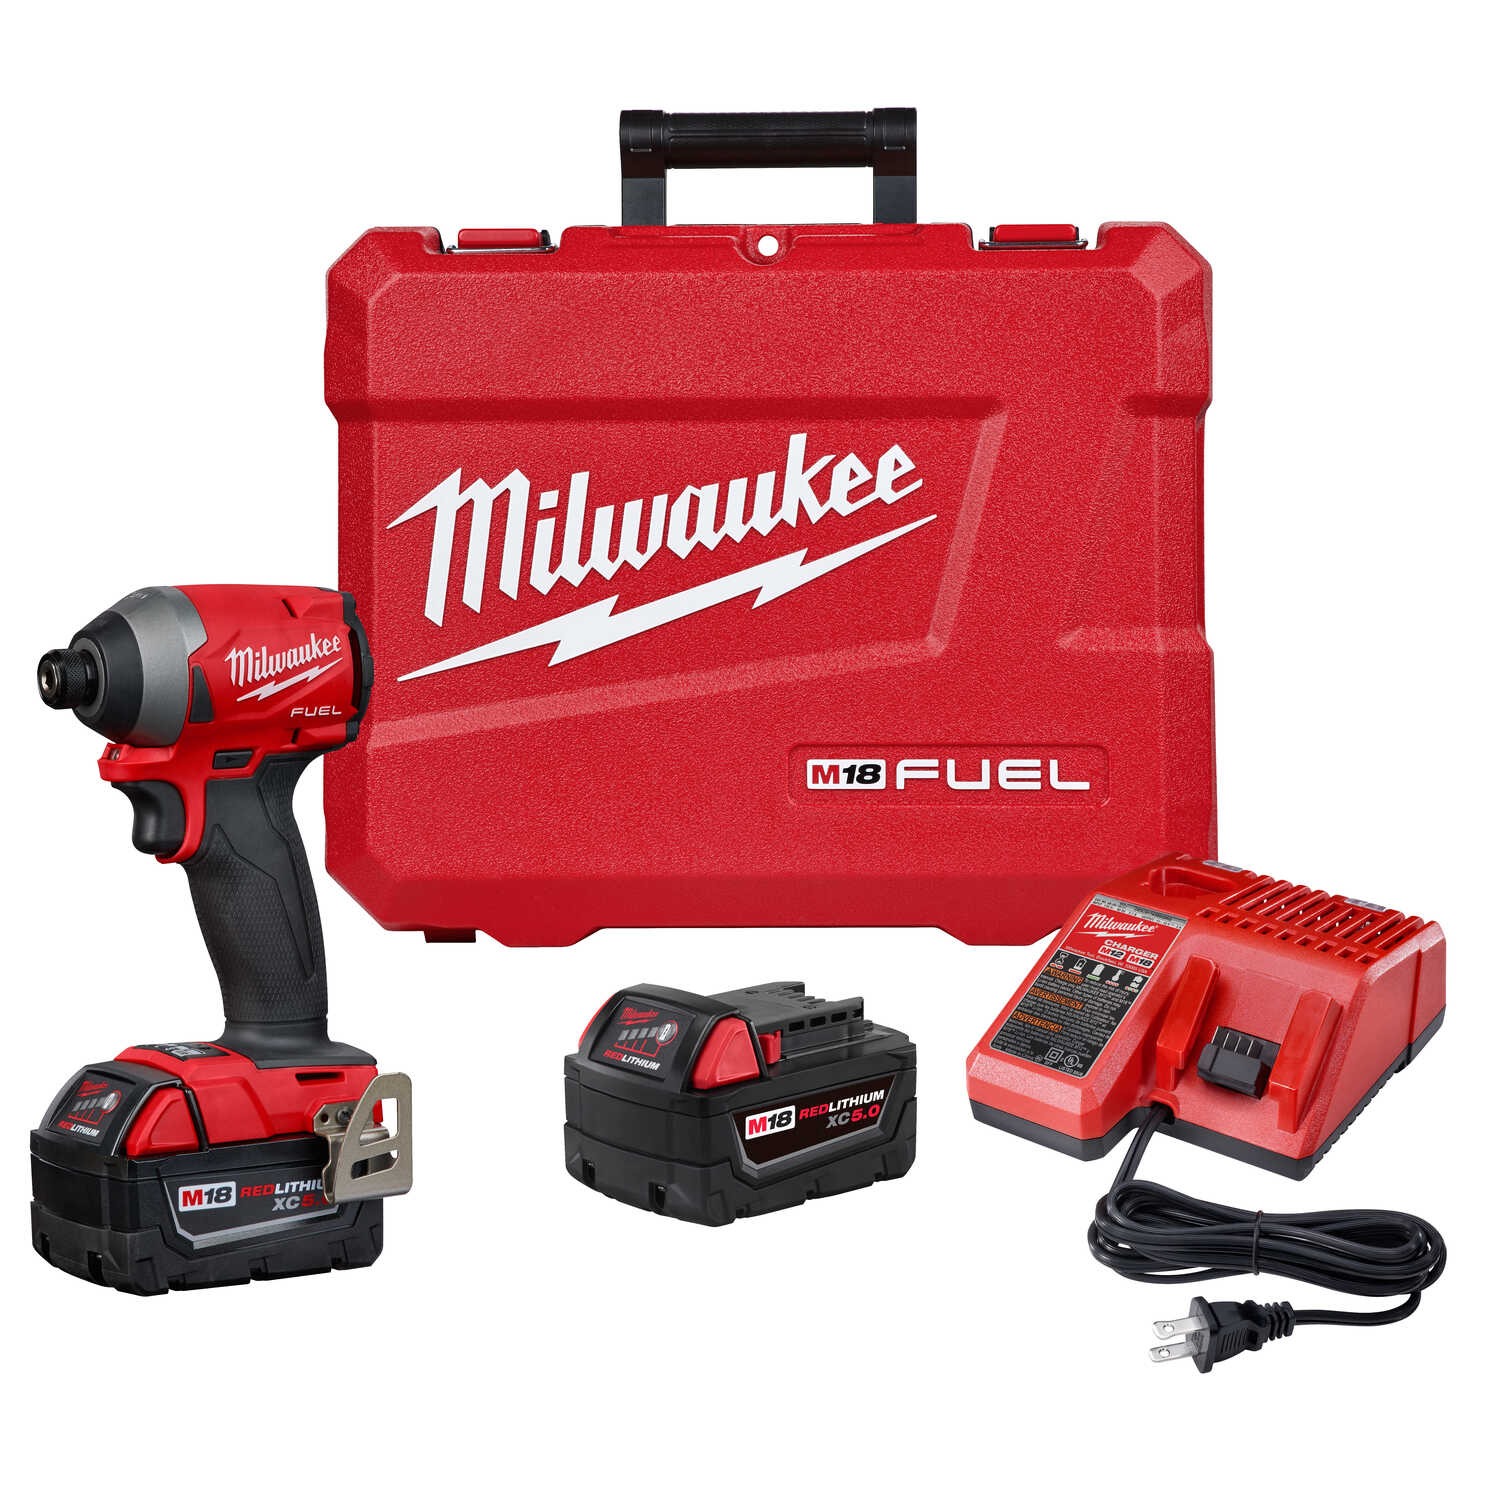 Milwaukee  M18 FUEL  18 volt Cordless  Brushless  Impact Driver  Kit  2000 in-lb